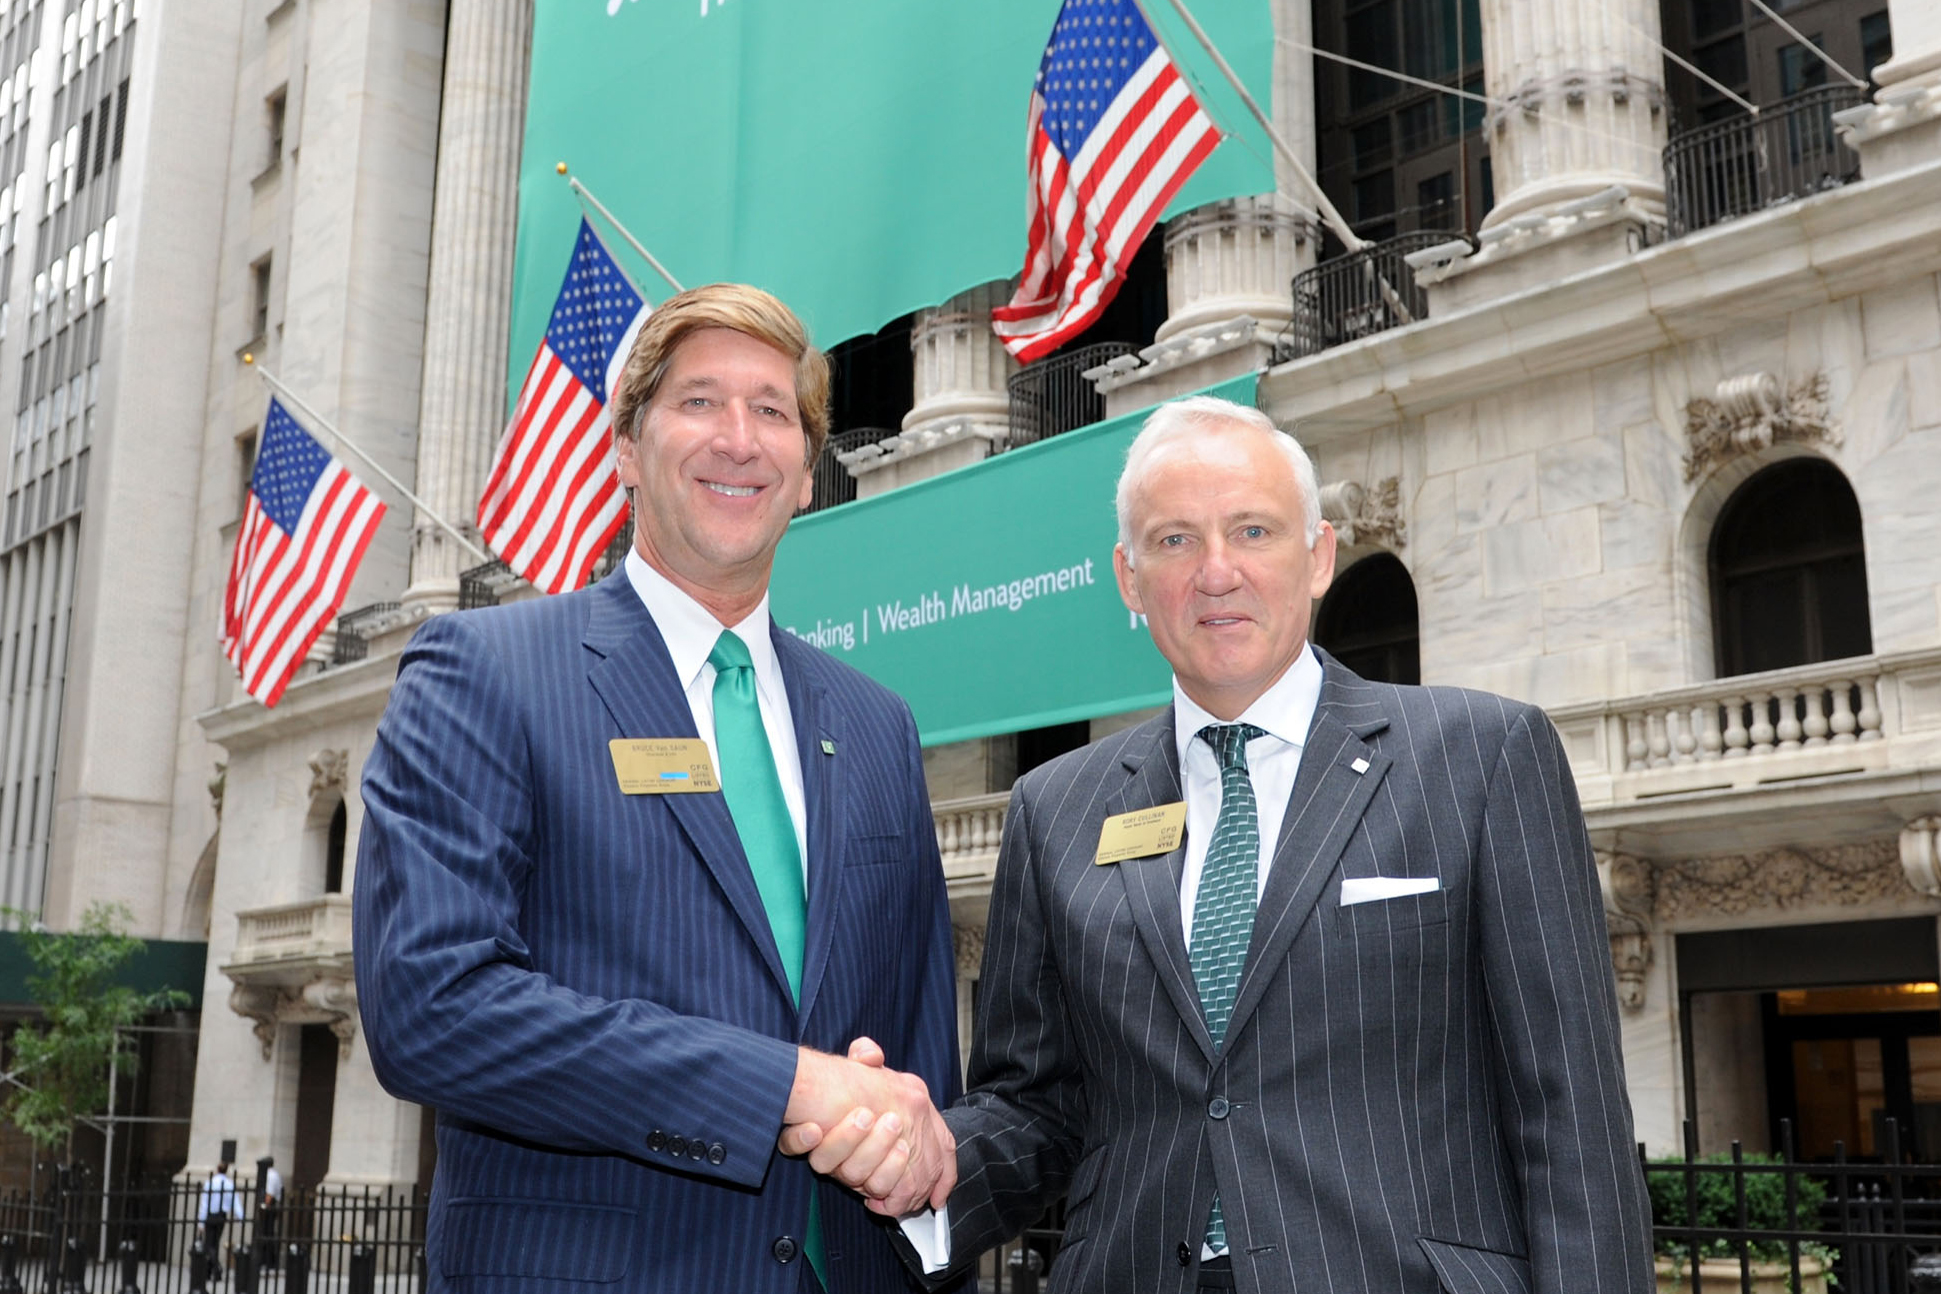 Rory Cullinan, right, with Bruce Van Saun, CEO of Citizens Financial Group, in September 2014.